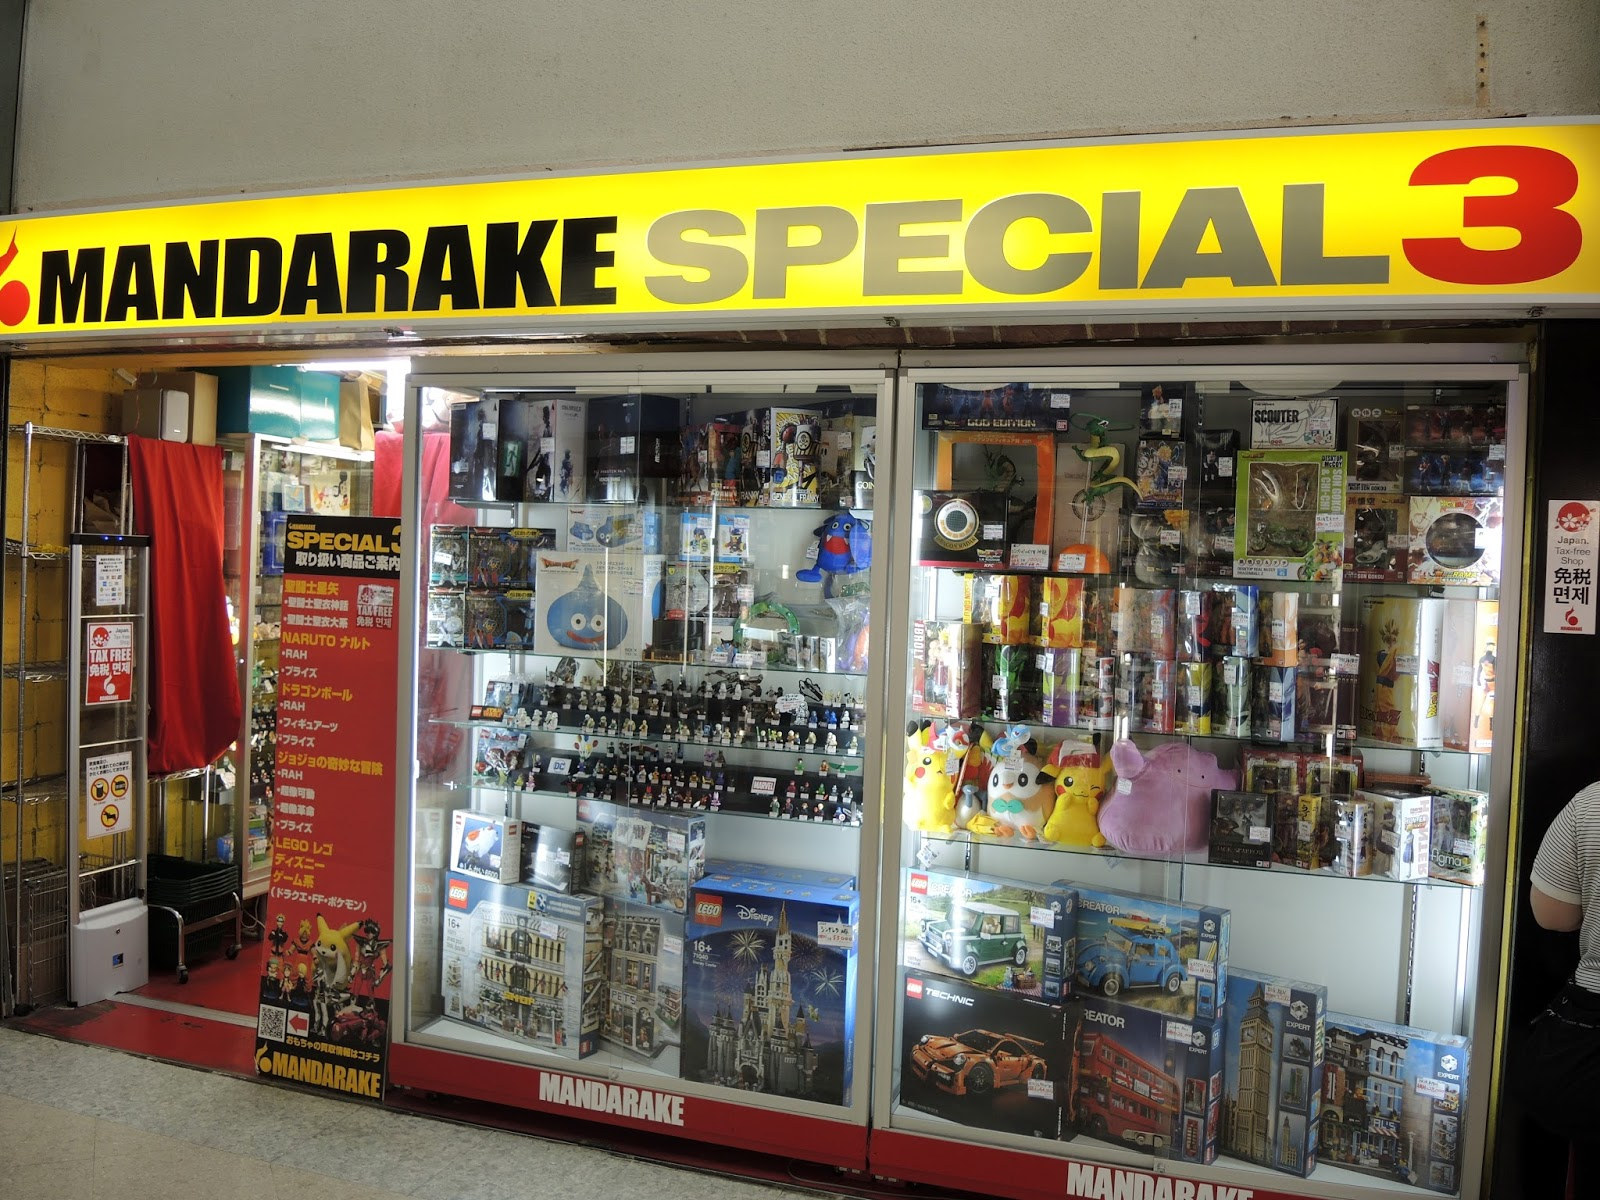 At Special 3 They Sell Figurine And Other Goods Of Japanese Anime Manga That Is Popular World Wide